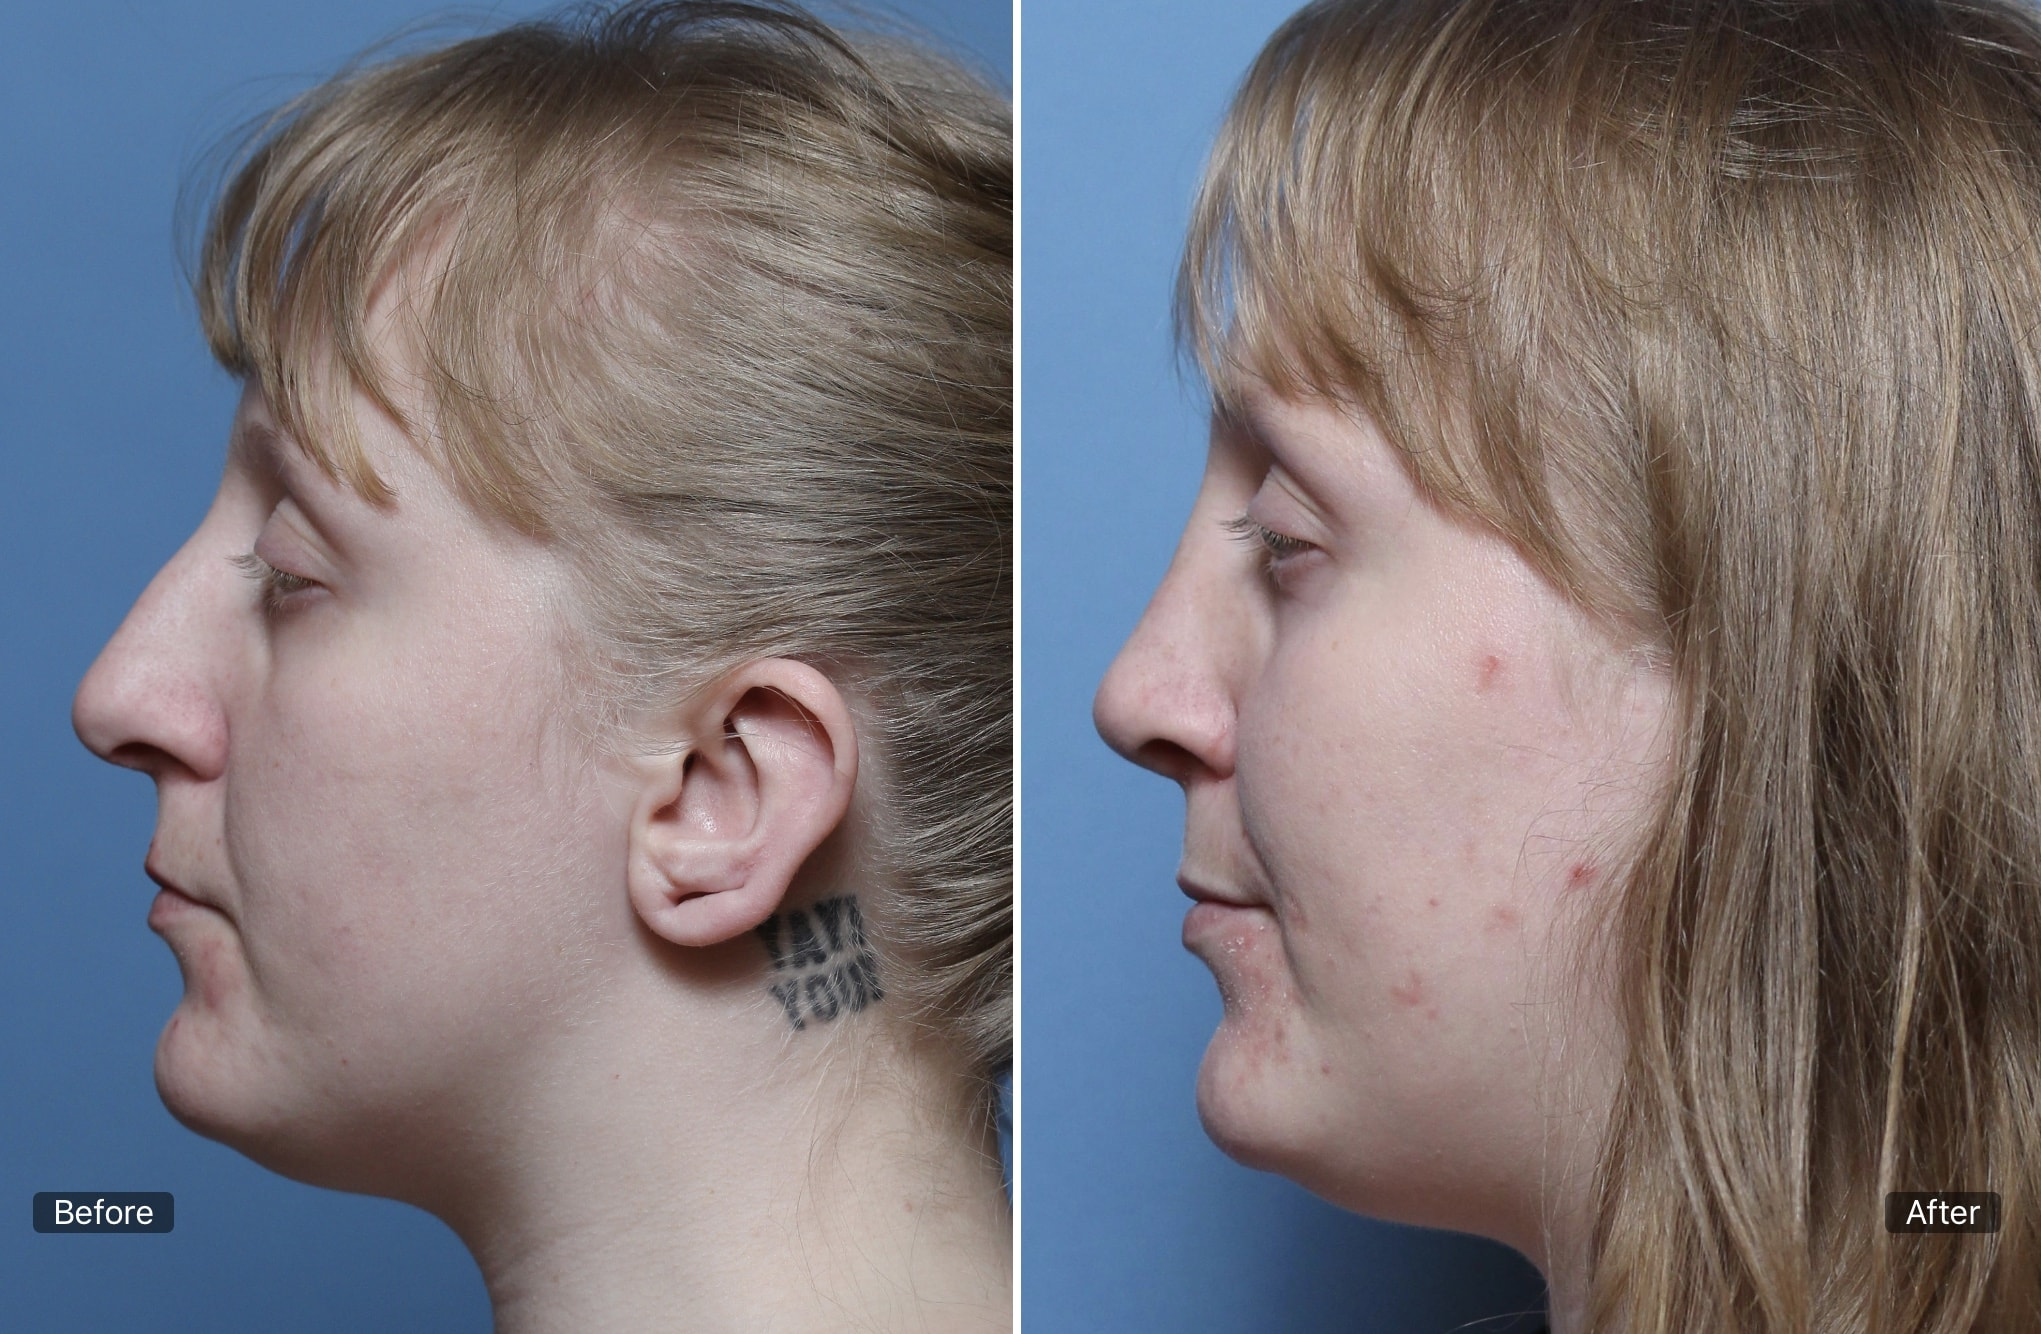 Peak ENT and Voice Center, Denver Voice Clinic, Denver ENT, Colorado ENT, Denver hearing specialists, colorado ent doctor, ent rhinoplasty specialist, Peak ENT